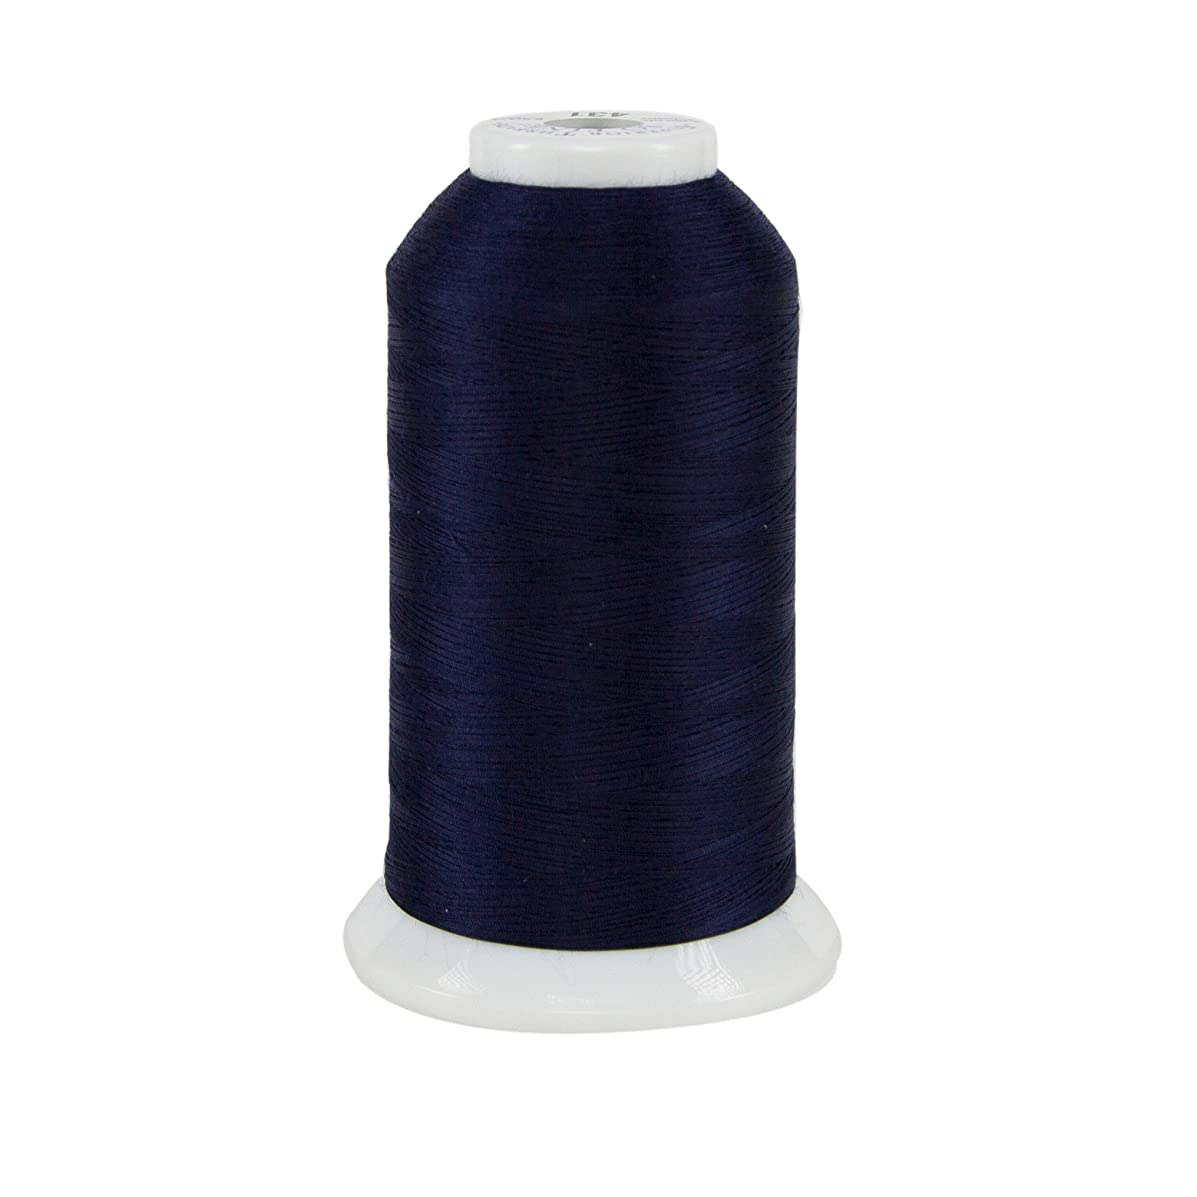 Superior Threads 11602-431 So Fine Navy 3-Ply 50W Polyester Thread, 3280 yd